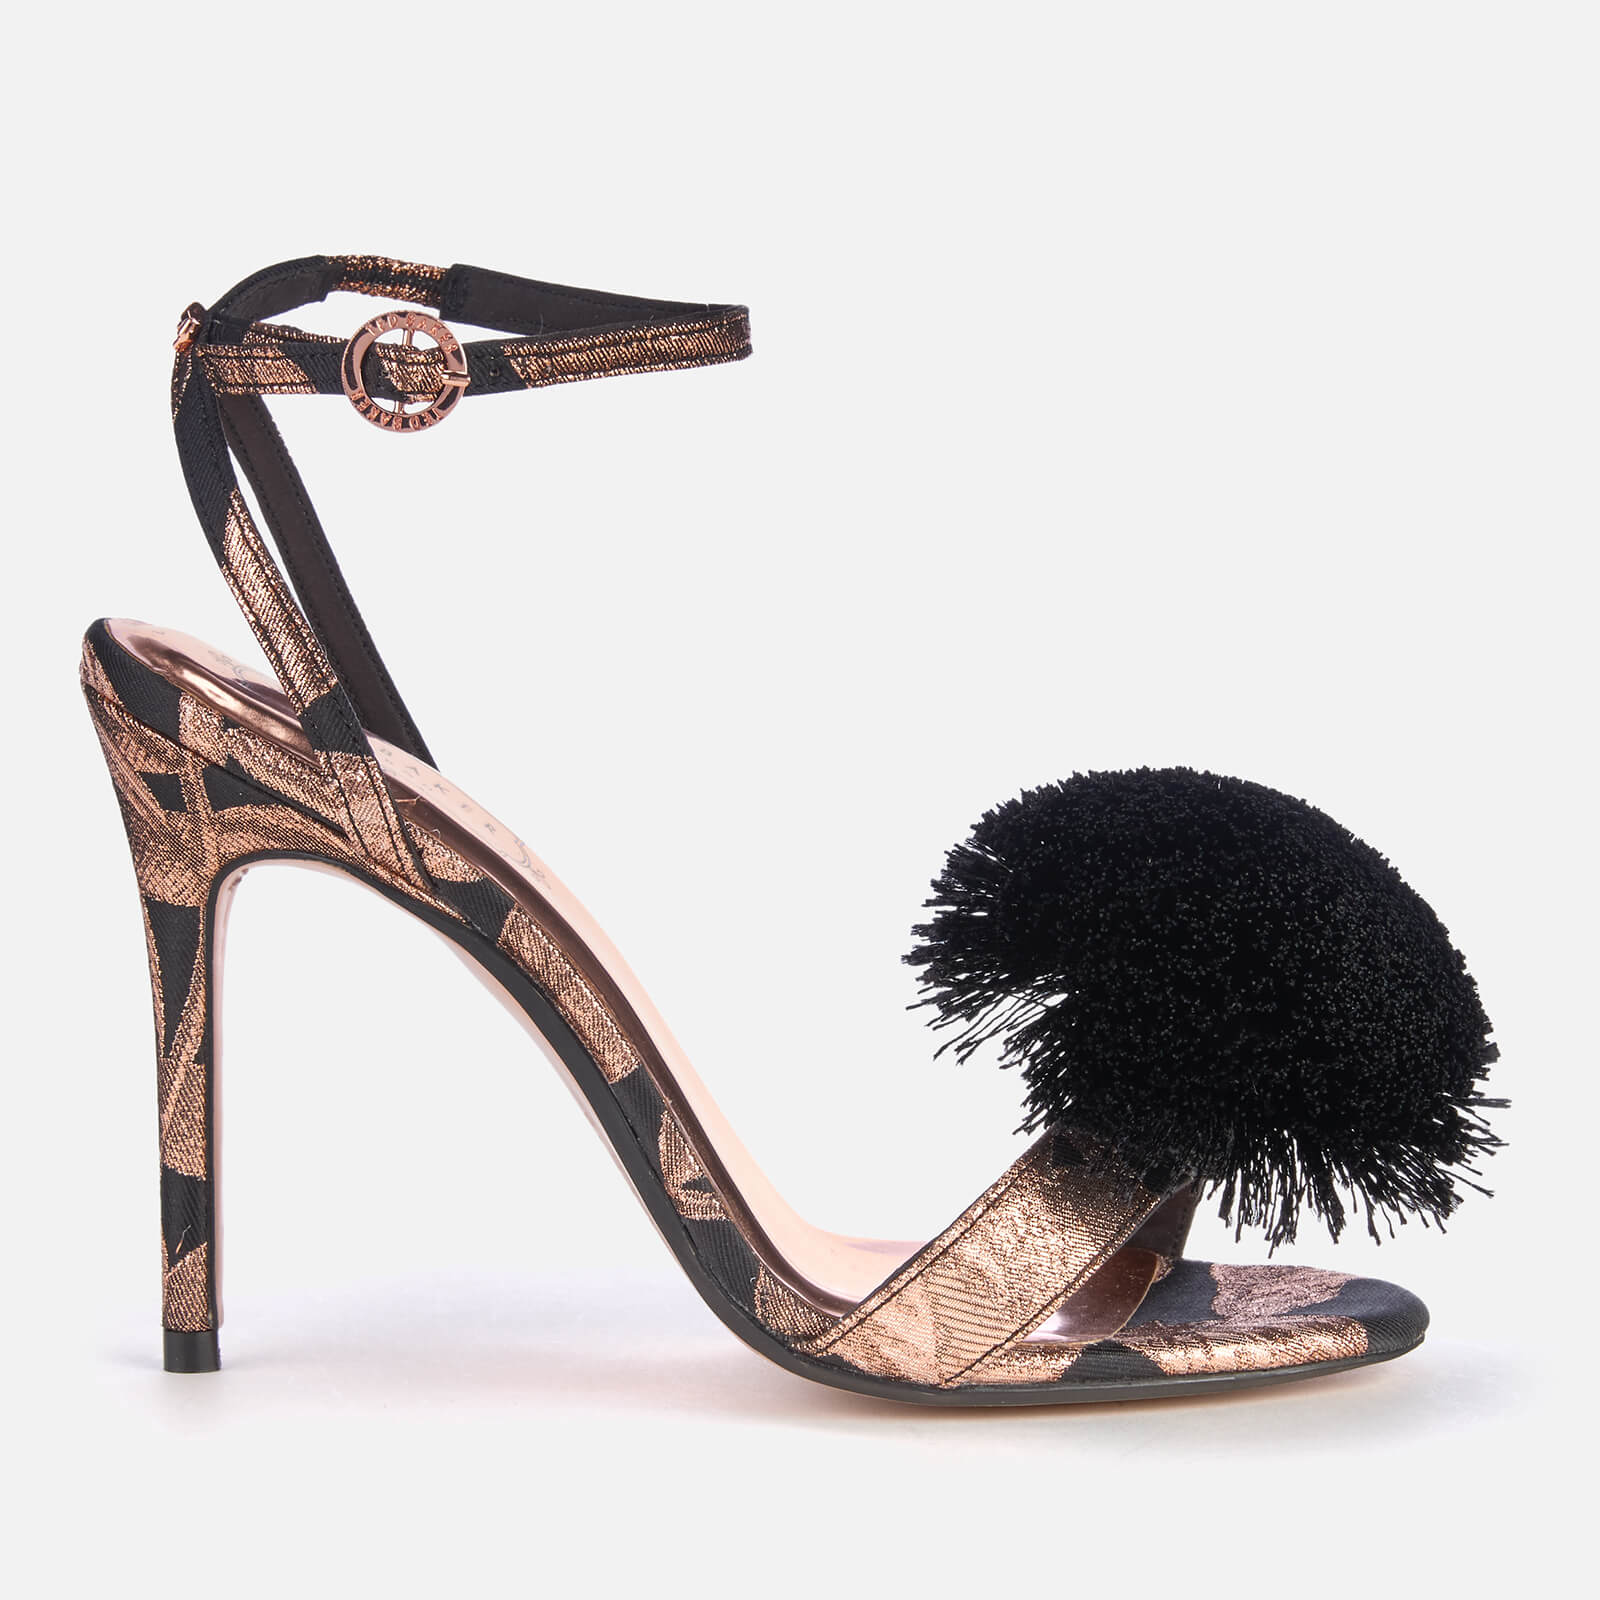 b31cd127c84 Ted Baker Women s Elynie Jacquard Barely There Heeled Sandals ...